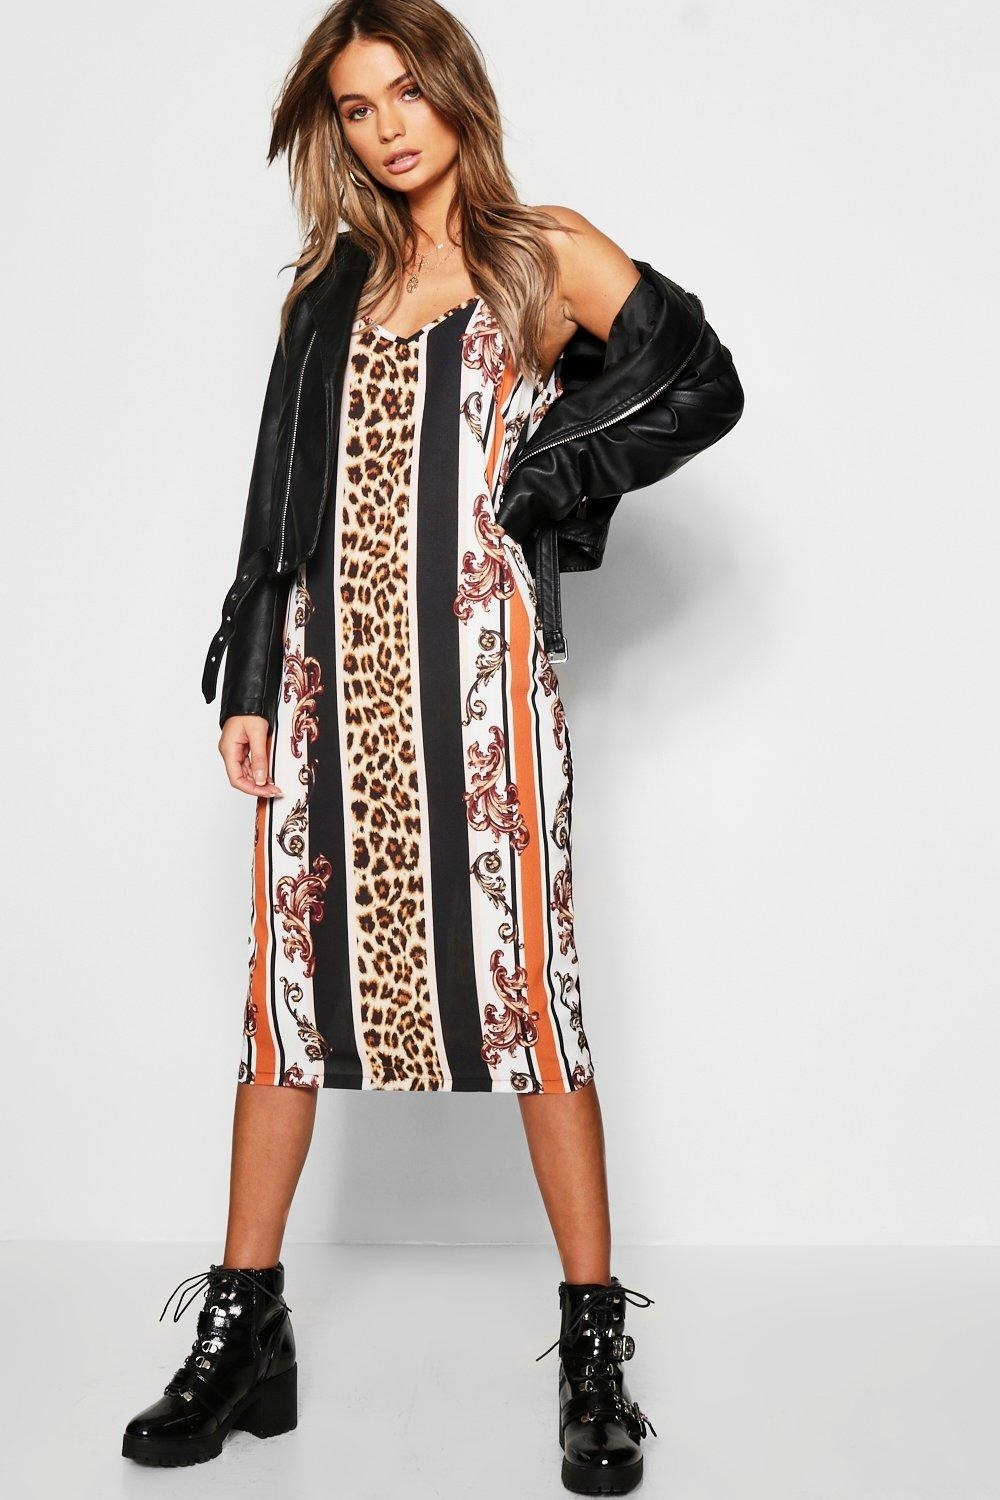 Multi-pattern dress with stripes of animal print, filigree, black, and orange. Worn with black ankle-high boots and leather jacket.